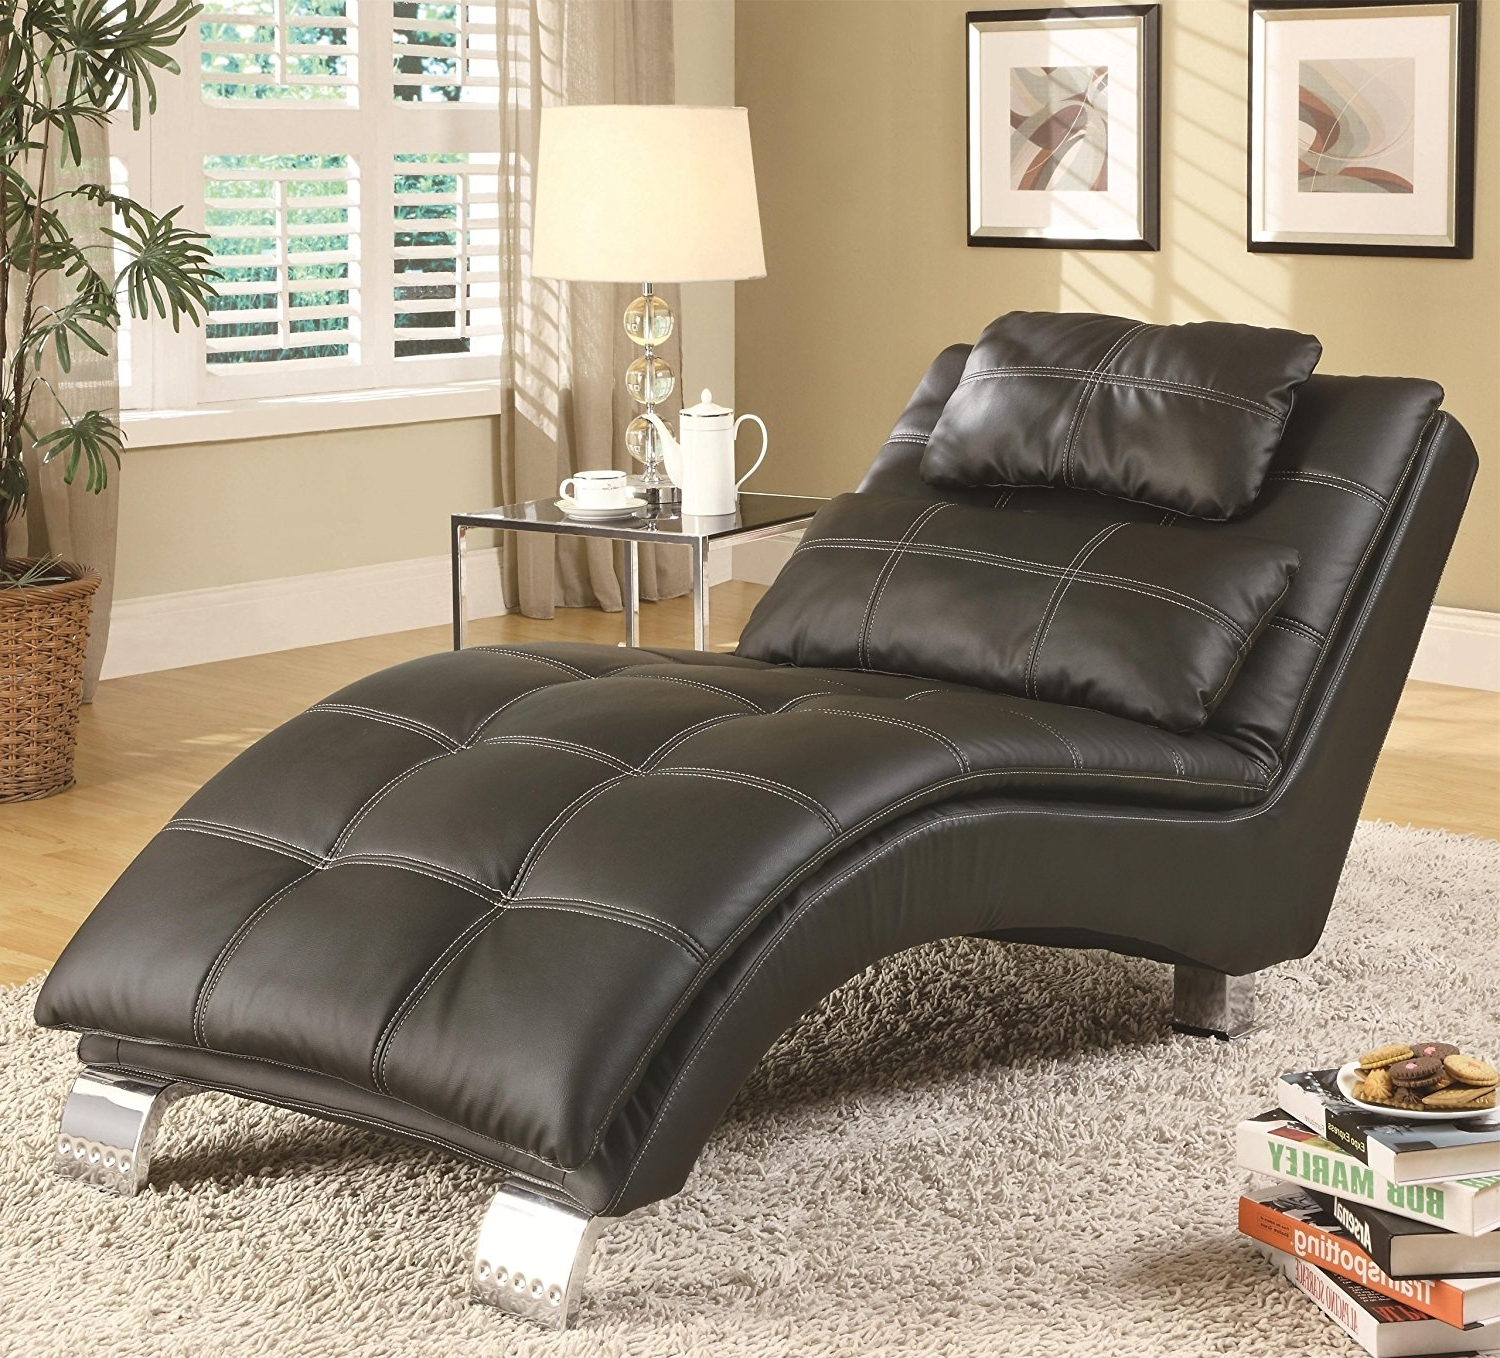 Teenage Chaise Lounges Intended For Trendy Convertible Chair : Chairs Teenage Girl Bedroom Furniture Sets (View 10 of 15)